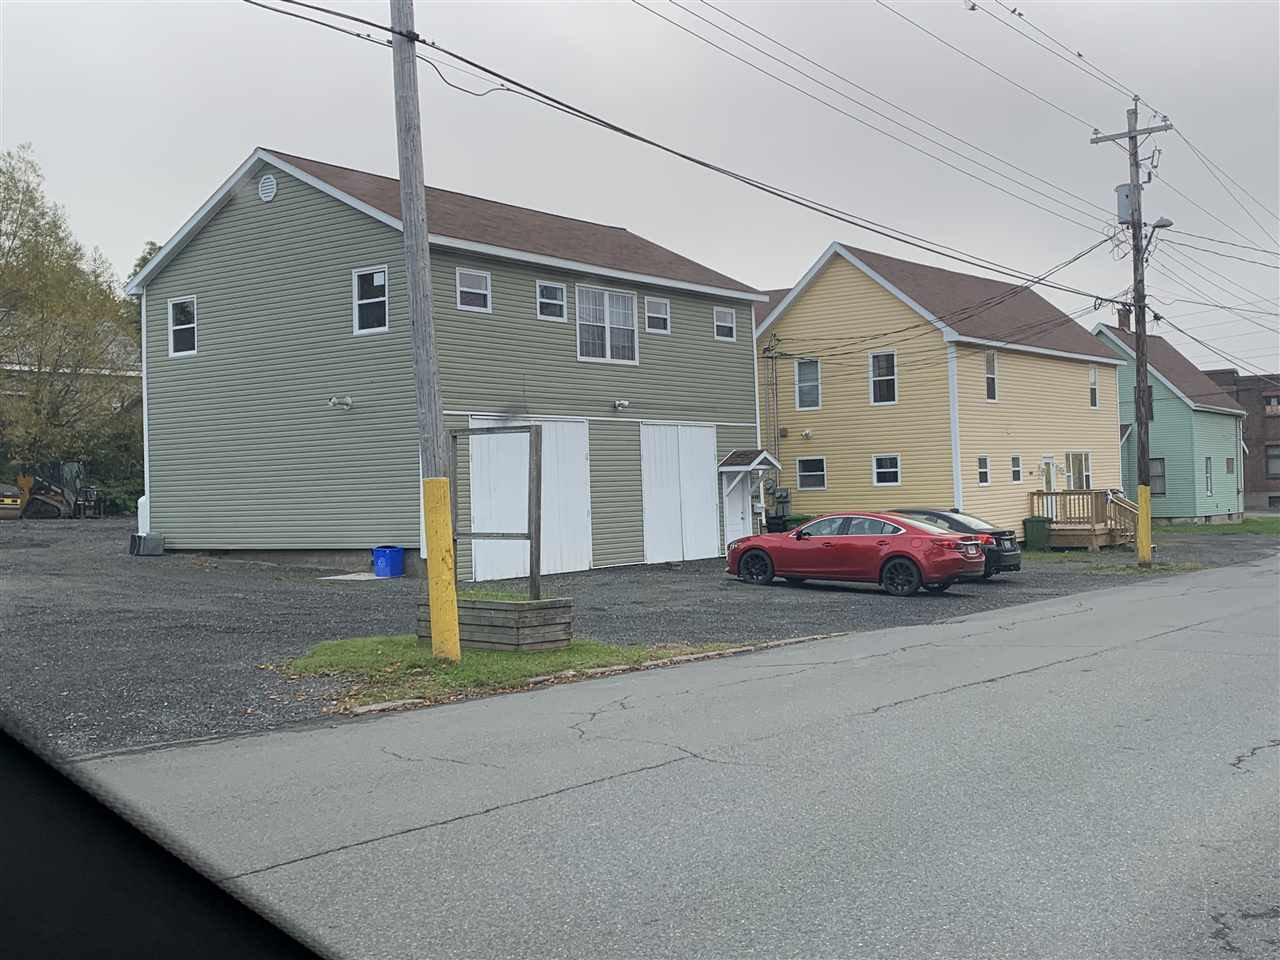 Main Photo: 448-464 Stewart Street in New Glasgow: 106-New Glasgow, Stellarton Multi-Family for sale (Northern Region)  : MLS®# 202018825